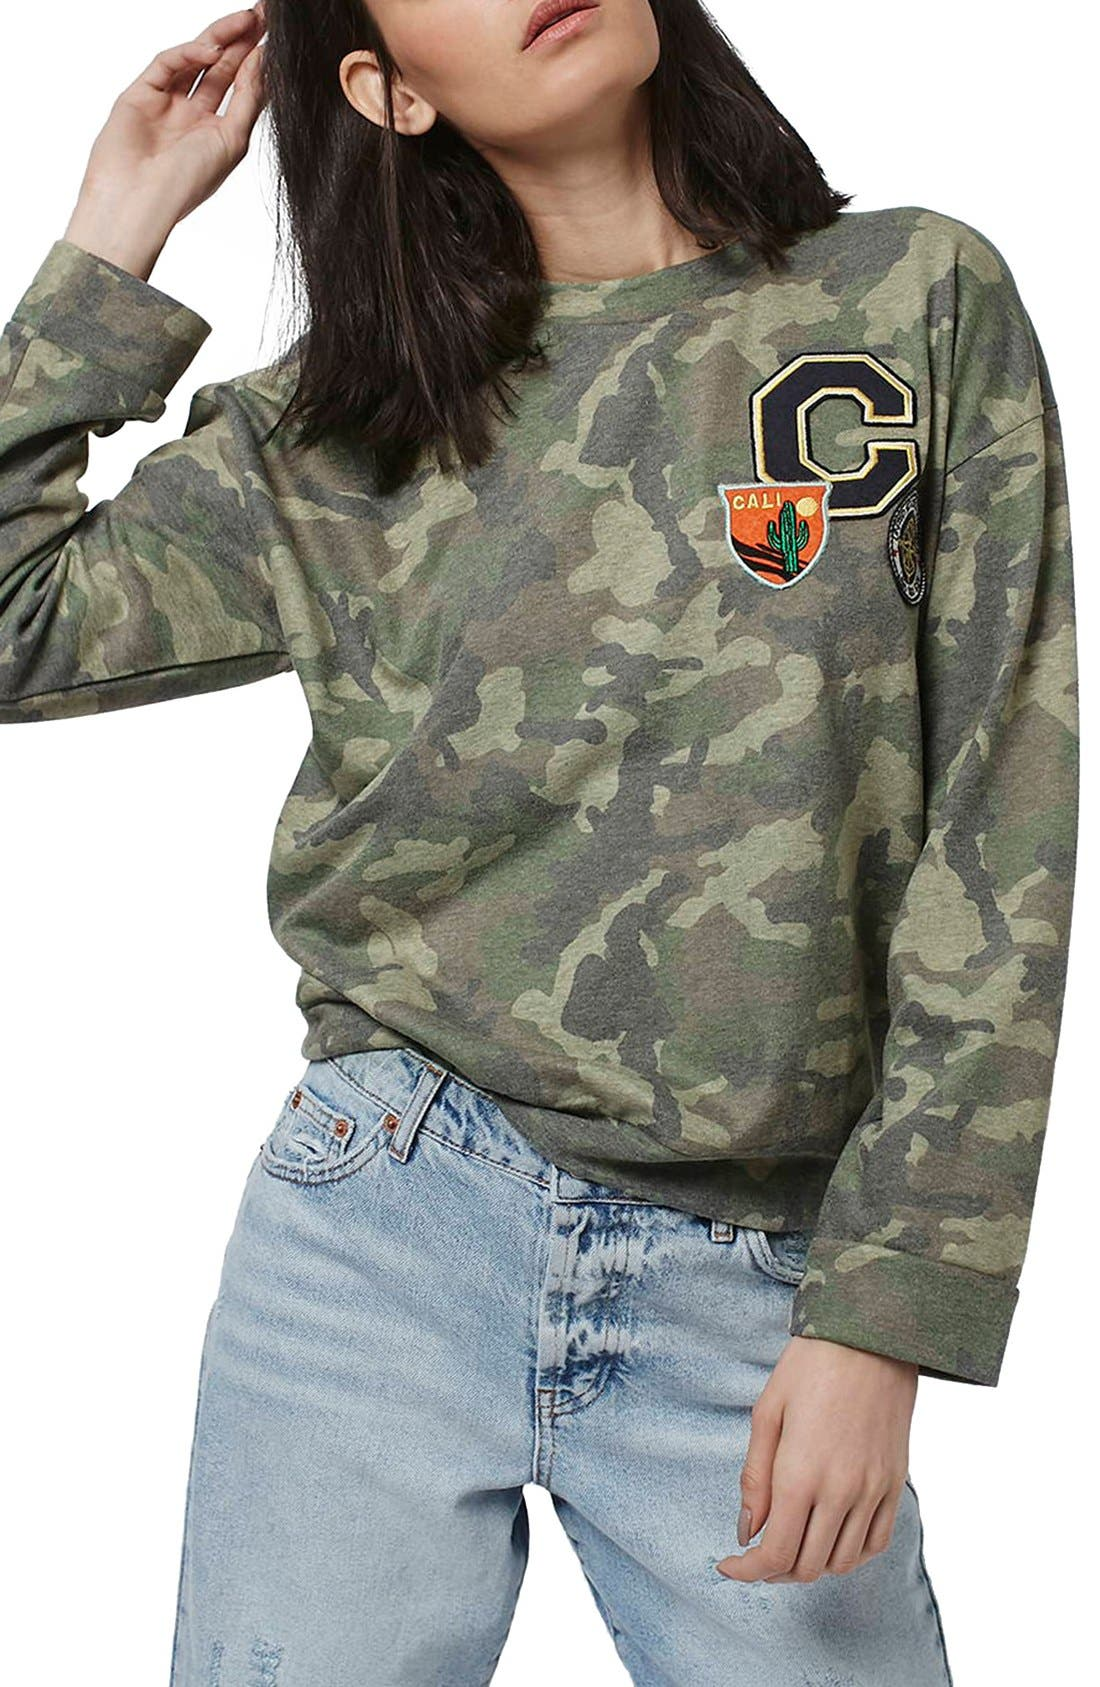 Alternate Image 1 Selected - Topshop Camo Print Patch Sweatshirt